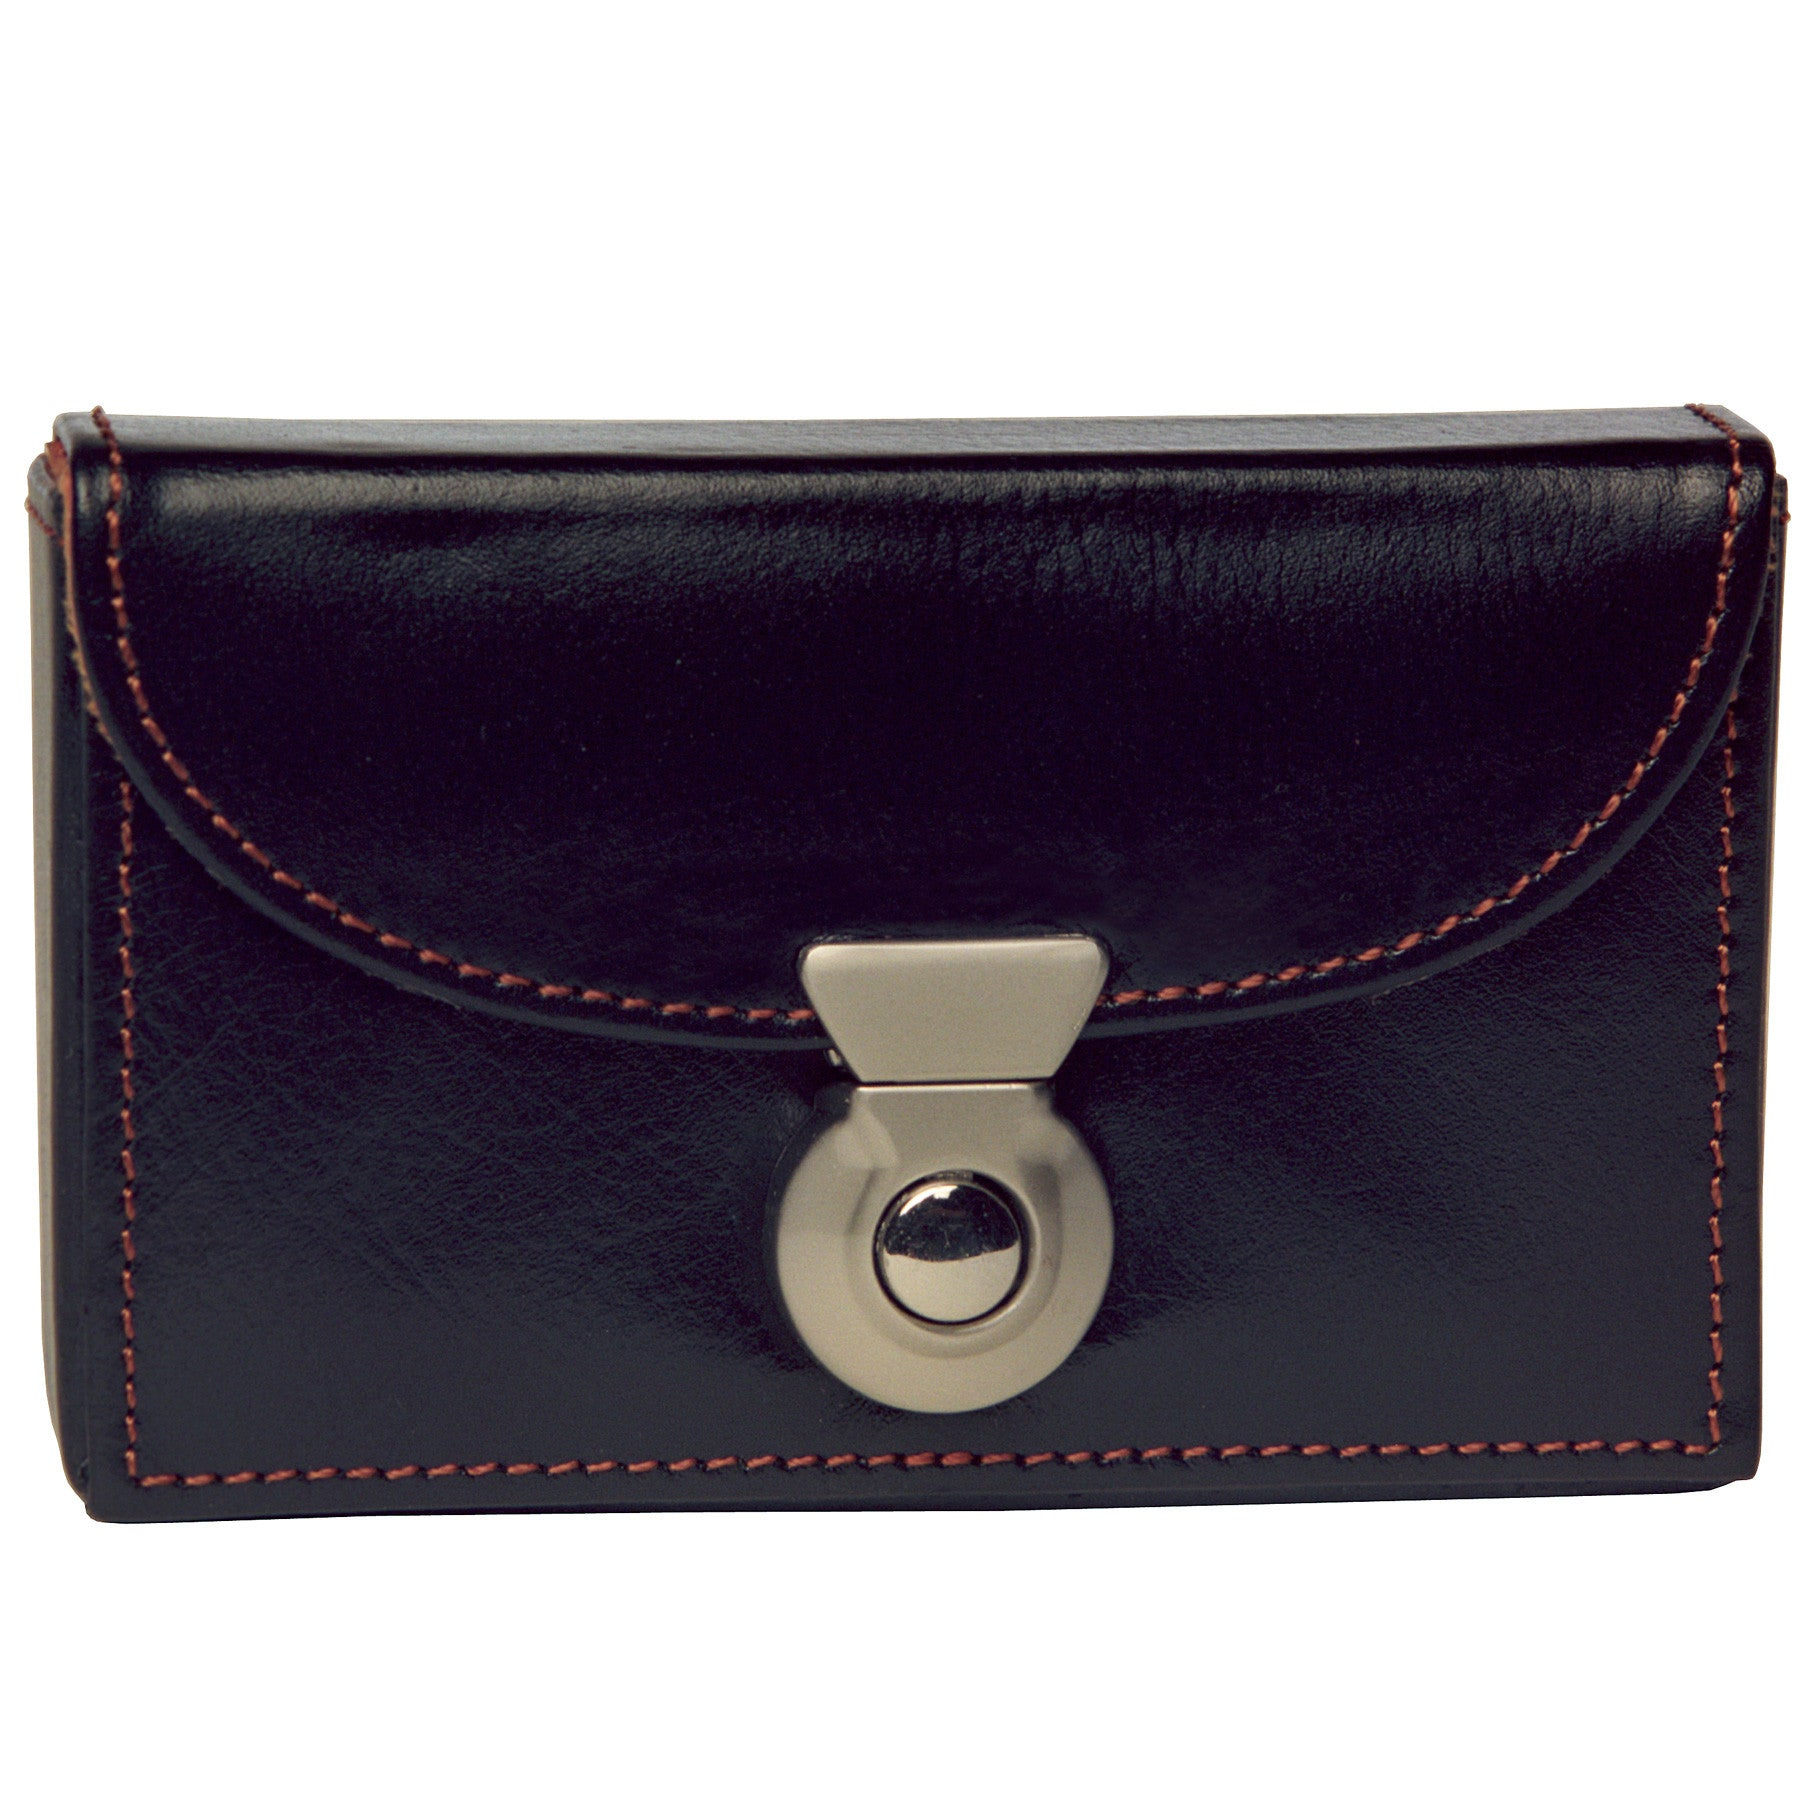 Alicia Klein leather card holder, black